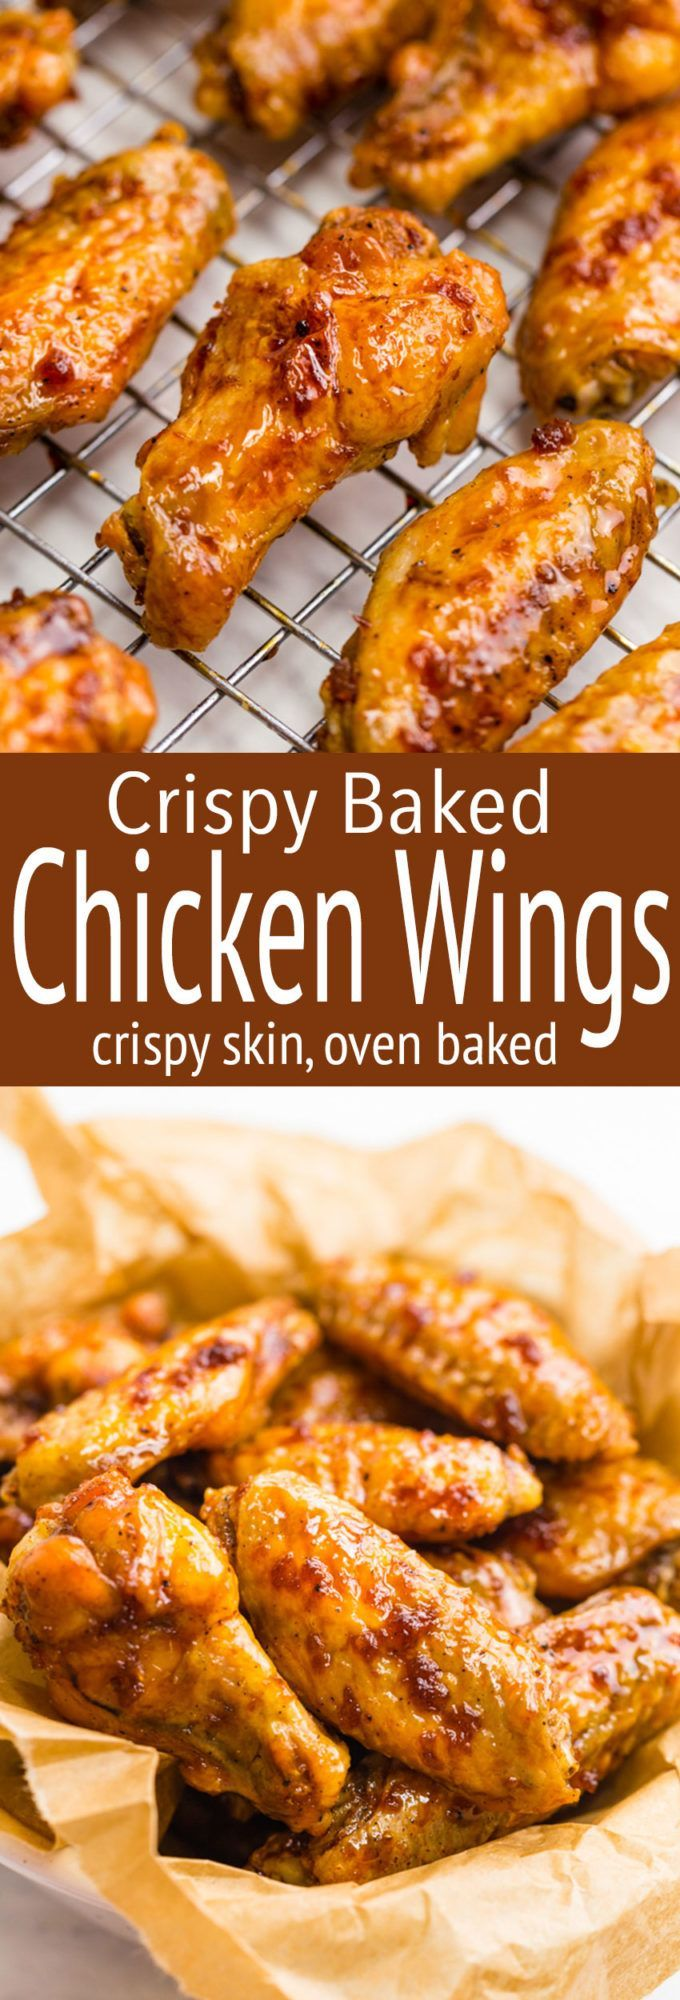 ce8a32448d9edef747a7618700ed6038 - How To Get Crispy Chicken Wings In The Oven